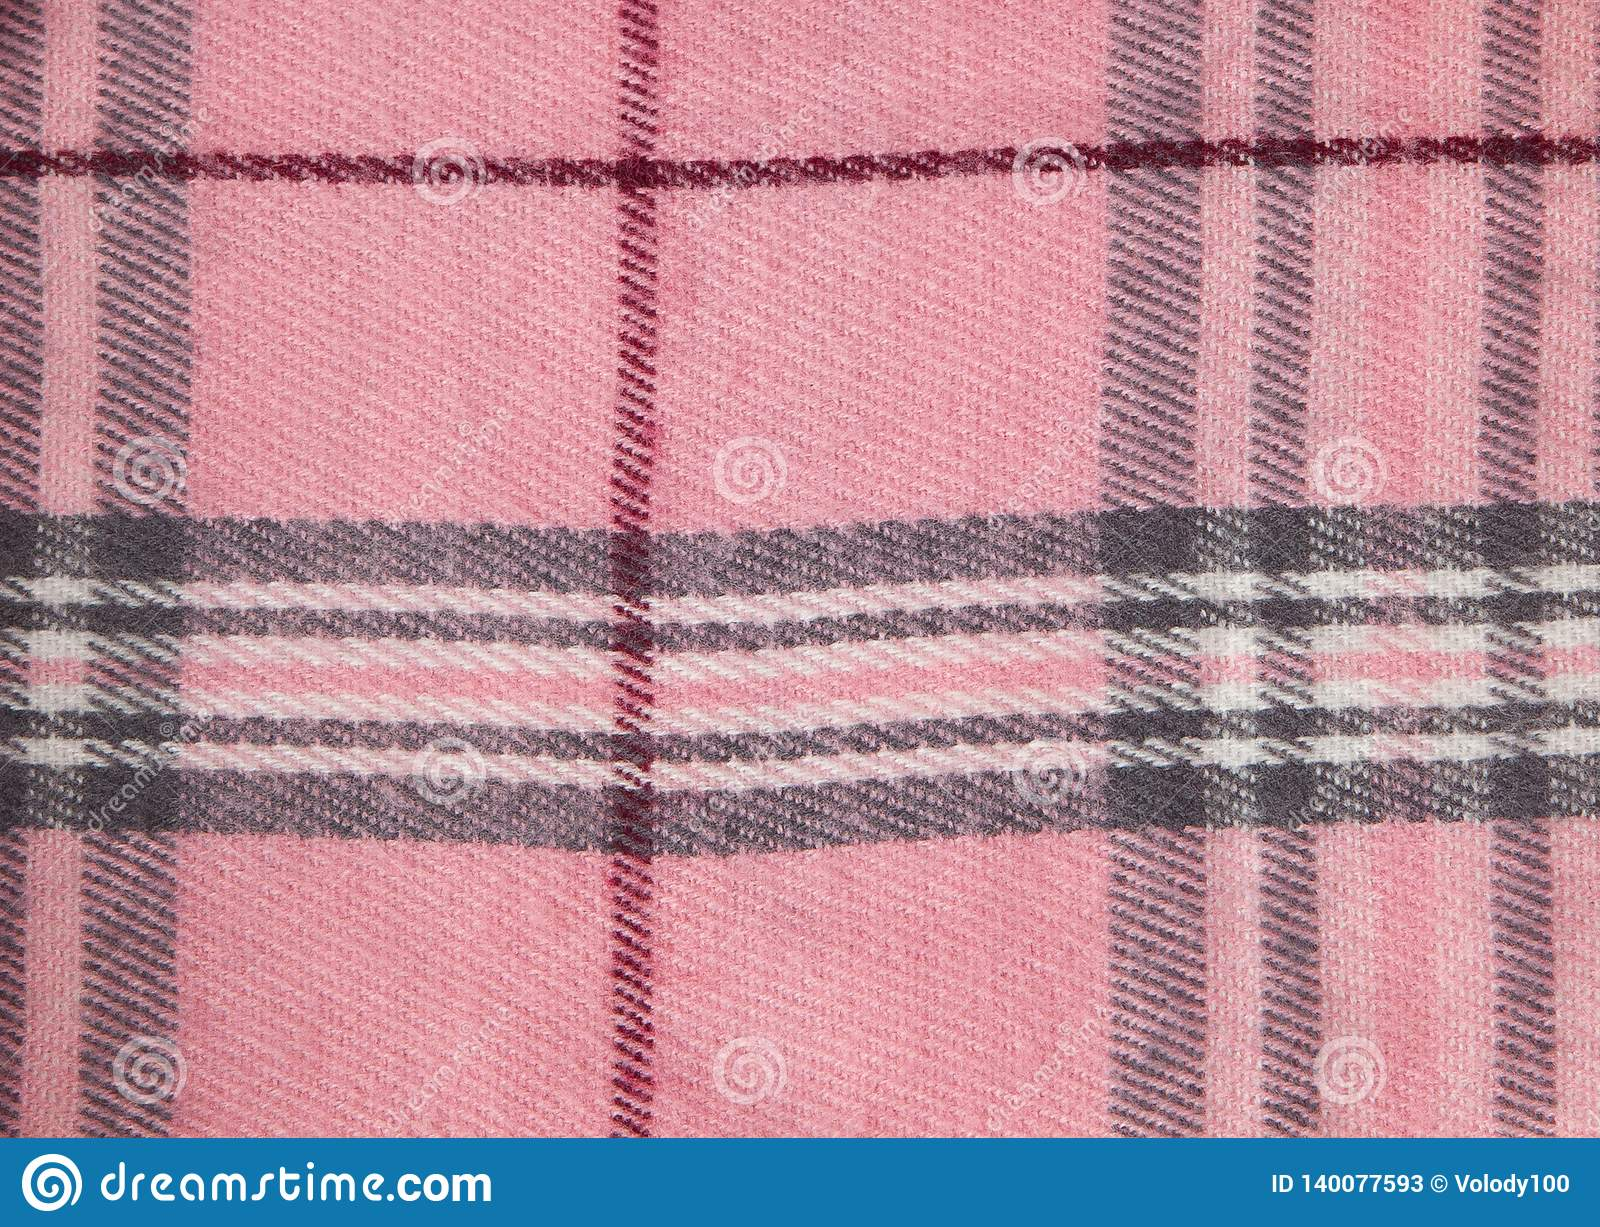 Square pattern fabric background. Textures pink and white cotton fabric. The pattern for textiles. Cell. Shirts plaid. Trendy